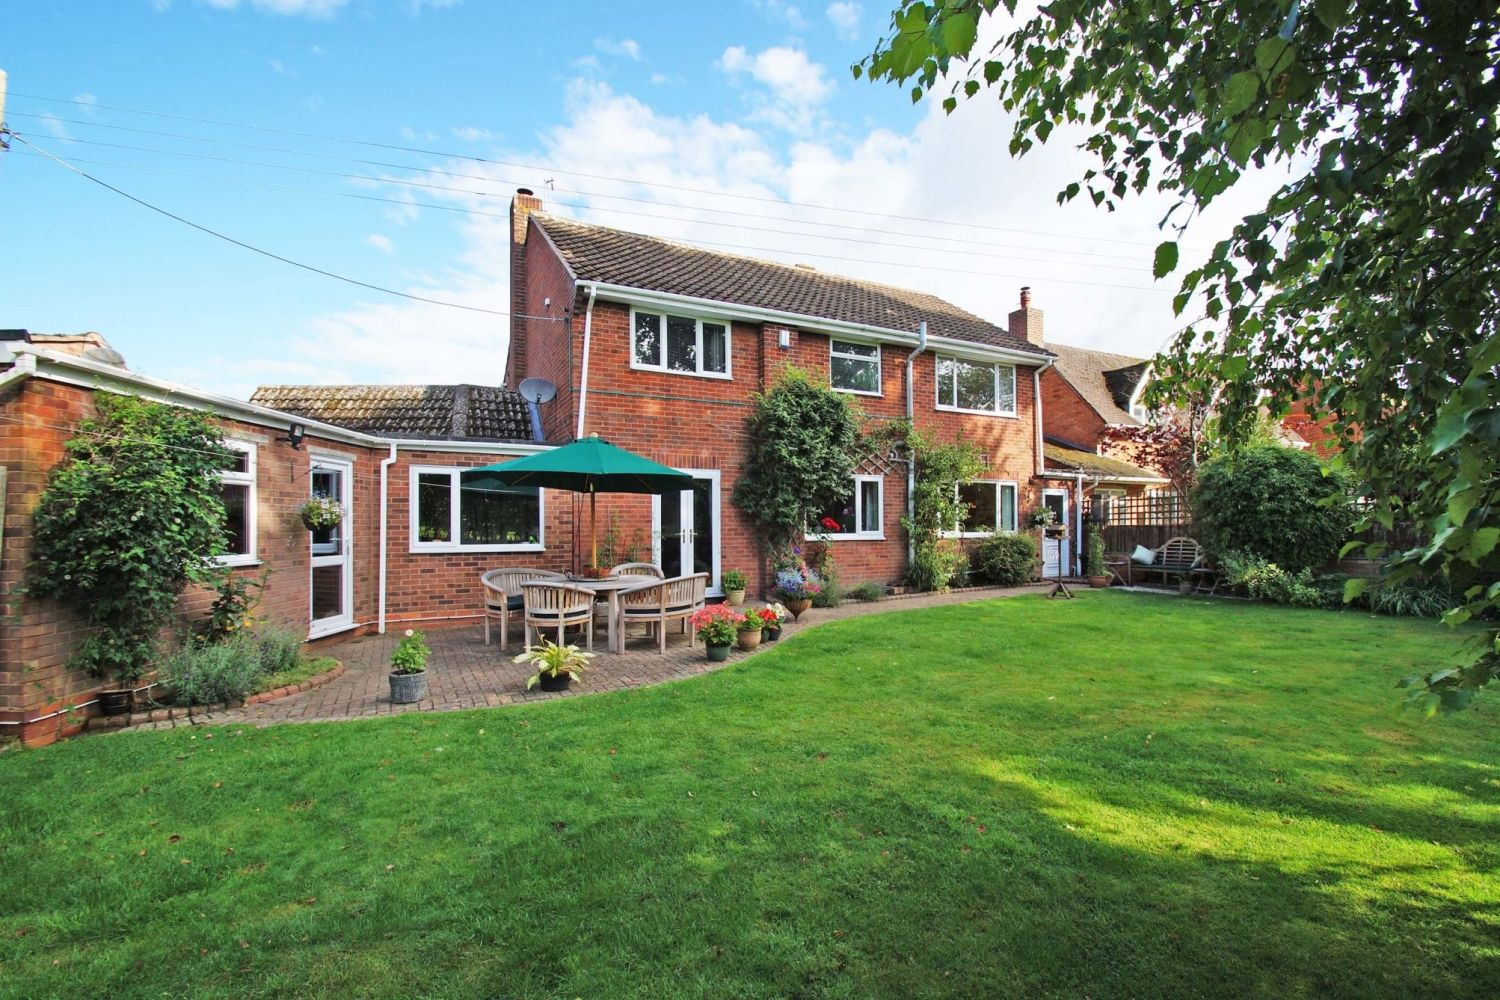 4 bed detached for sale in St. Richards Close, Wychbold  - Property Image 15